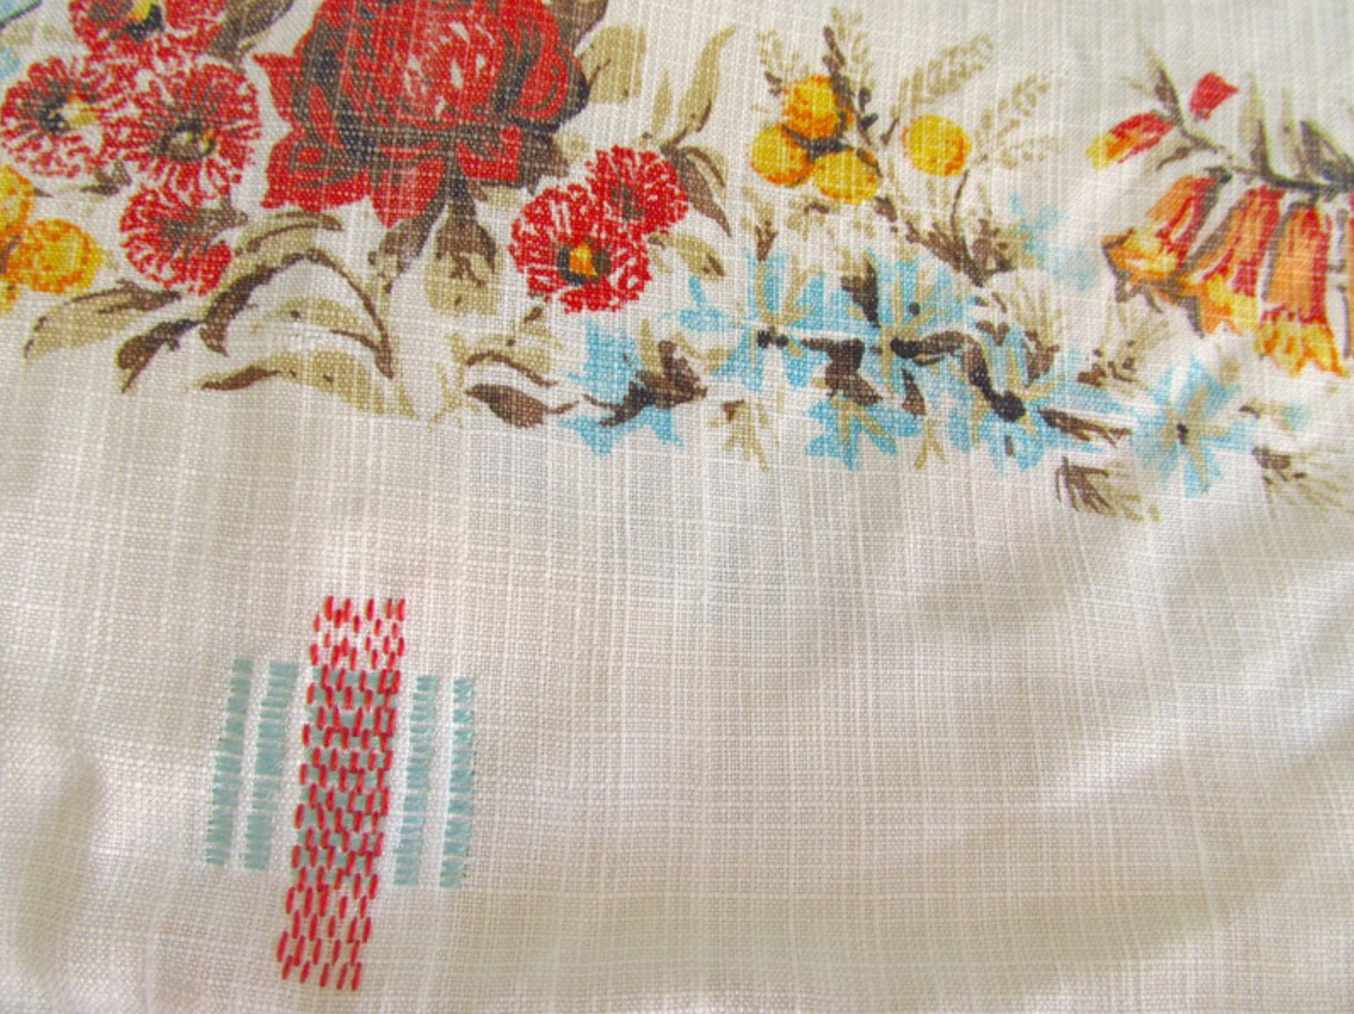 Repairing textiles with stitching